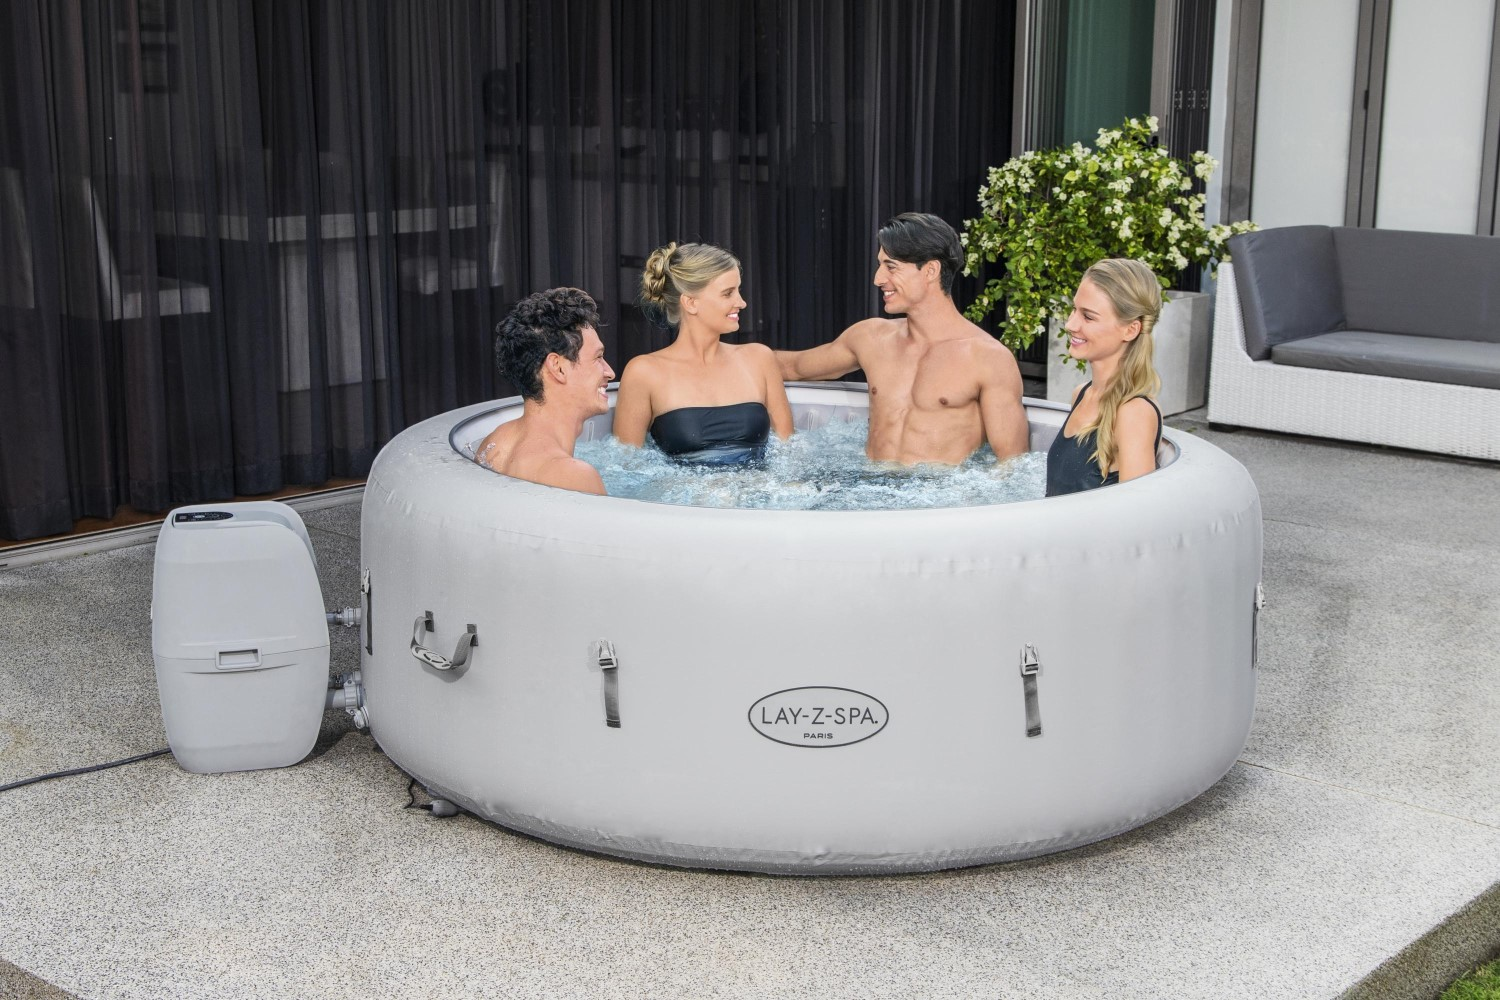 Bestway Whirlpool Lay-Z-SPA Paris beleuchtet 60013